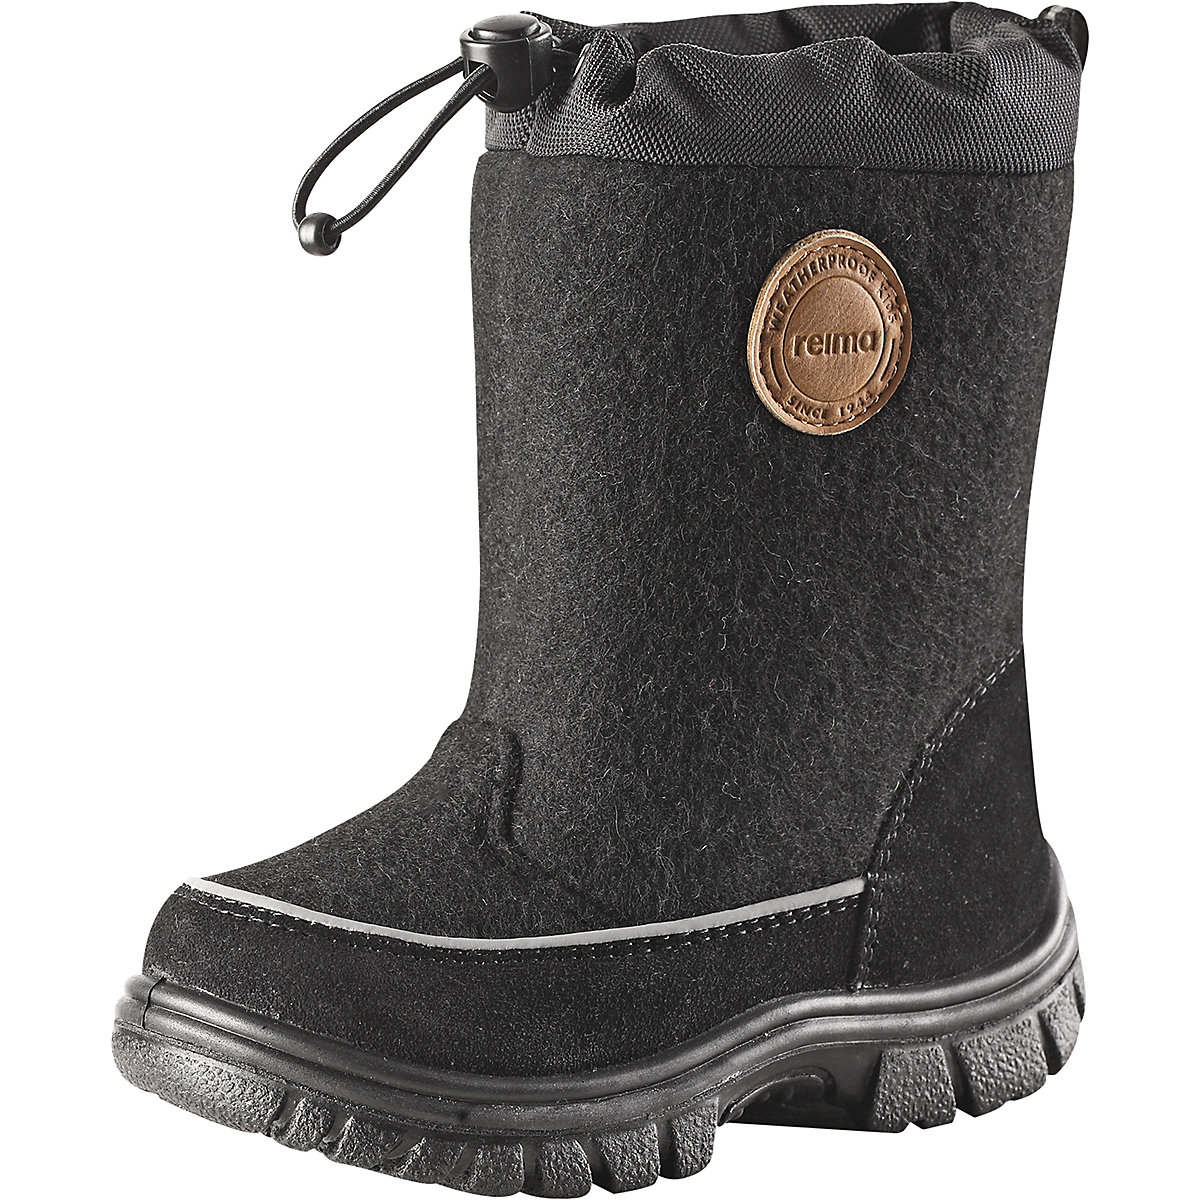 REIMA Boots 8624757 for boys winter boy  children shoes women shoes high heel for winter boots pointed toe ankle boots for women martin boots fashion zip gladiator women boots